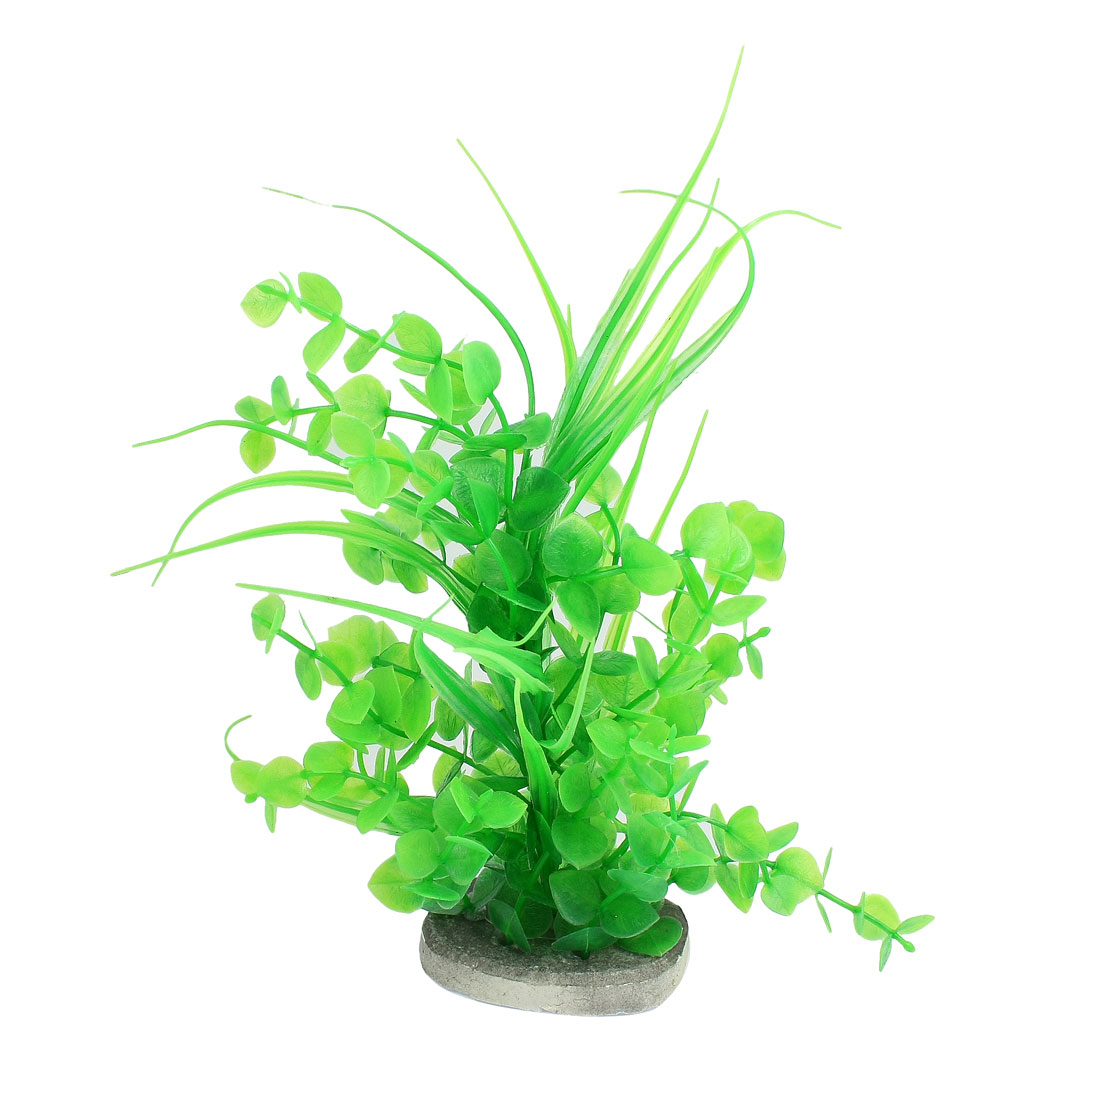 "Aquarium Decoration 8.5"" Height Green Leaf Plastic Underwater Plant"